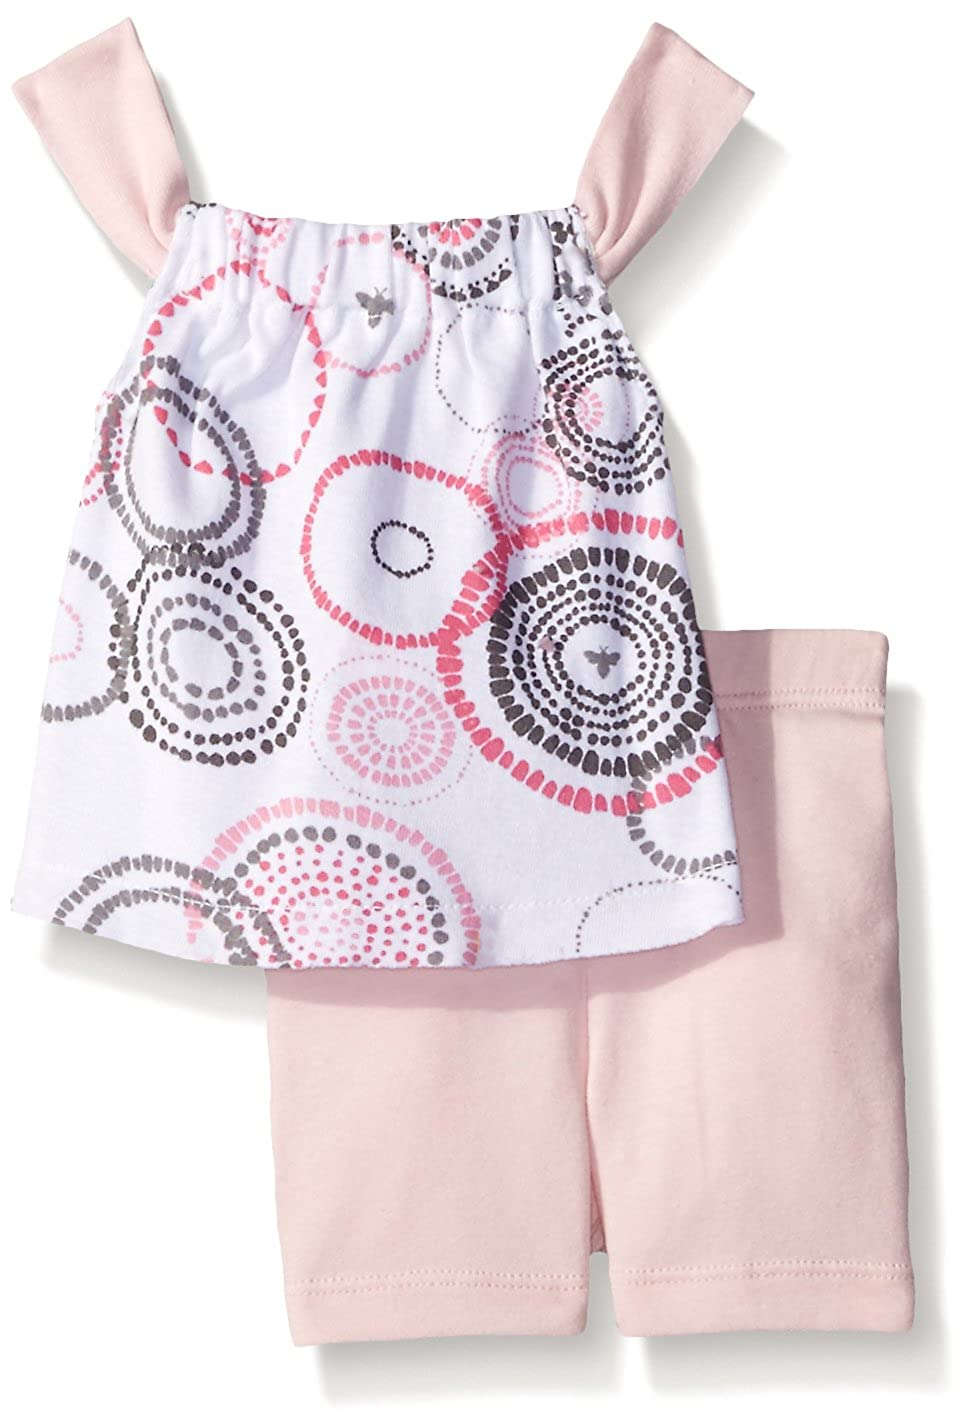 100/% Organic Cotton Burts Bees Baby Baby Girls Tee and Shorts Set Top and Bottoms Outfit